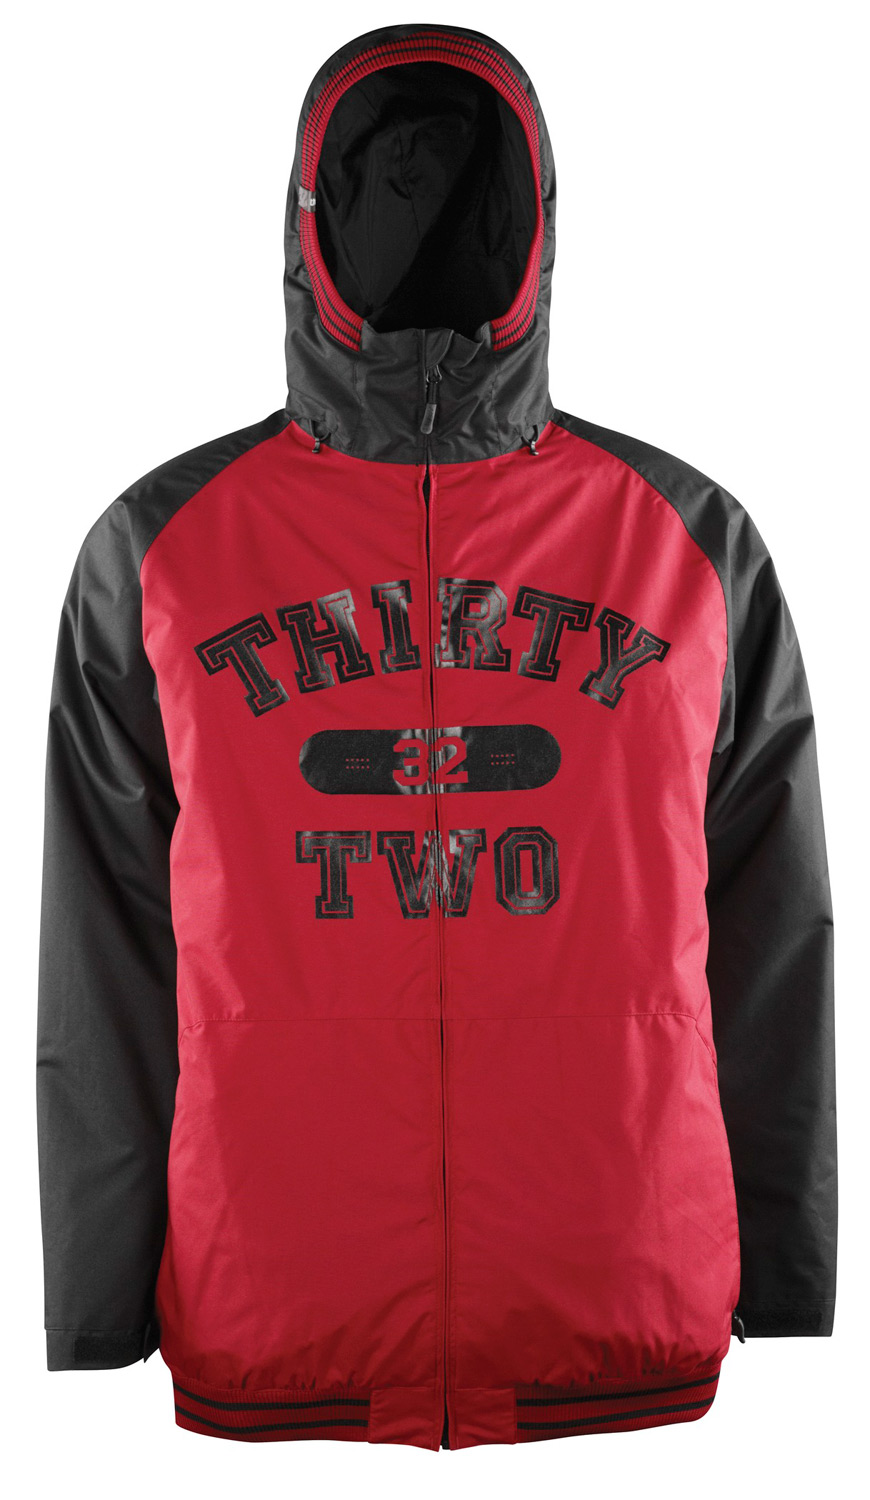 snowboard jackets on sale 32 - thirty two sesh snowboard jacket up to 50% off FKCNEQS